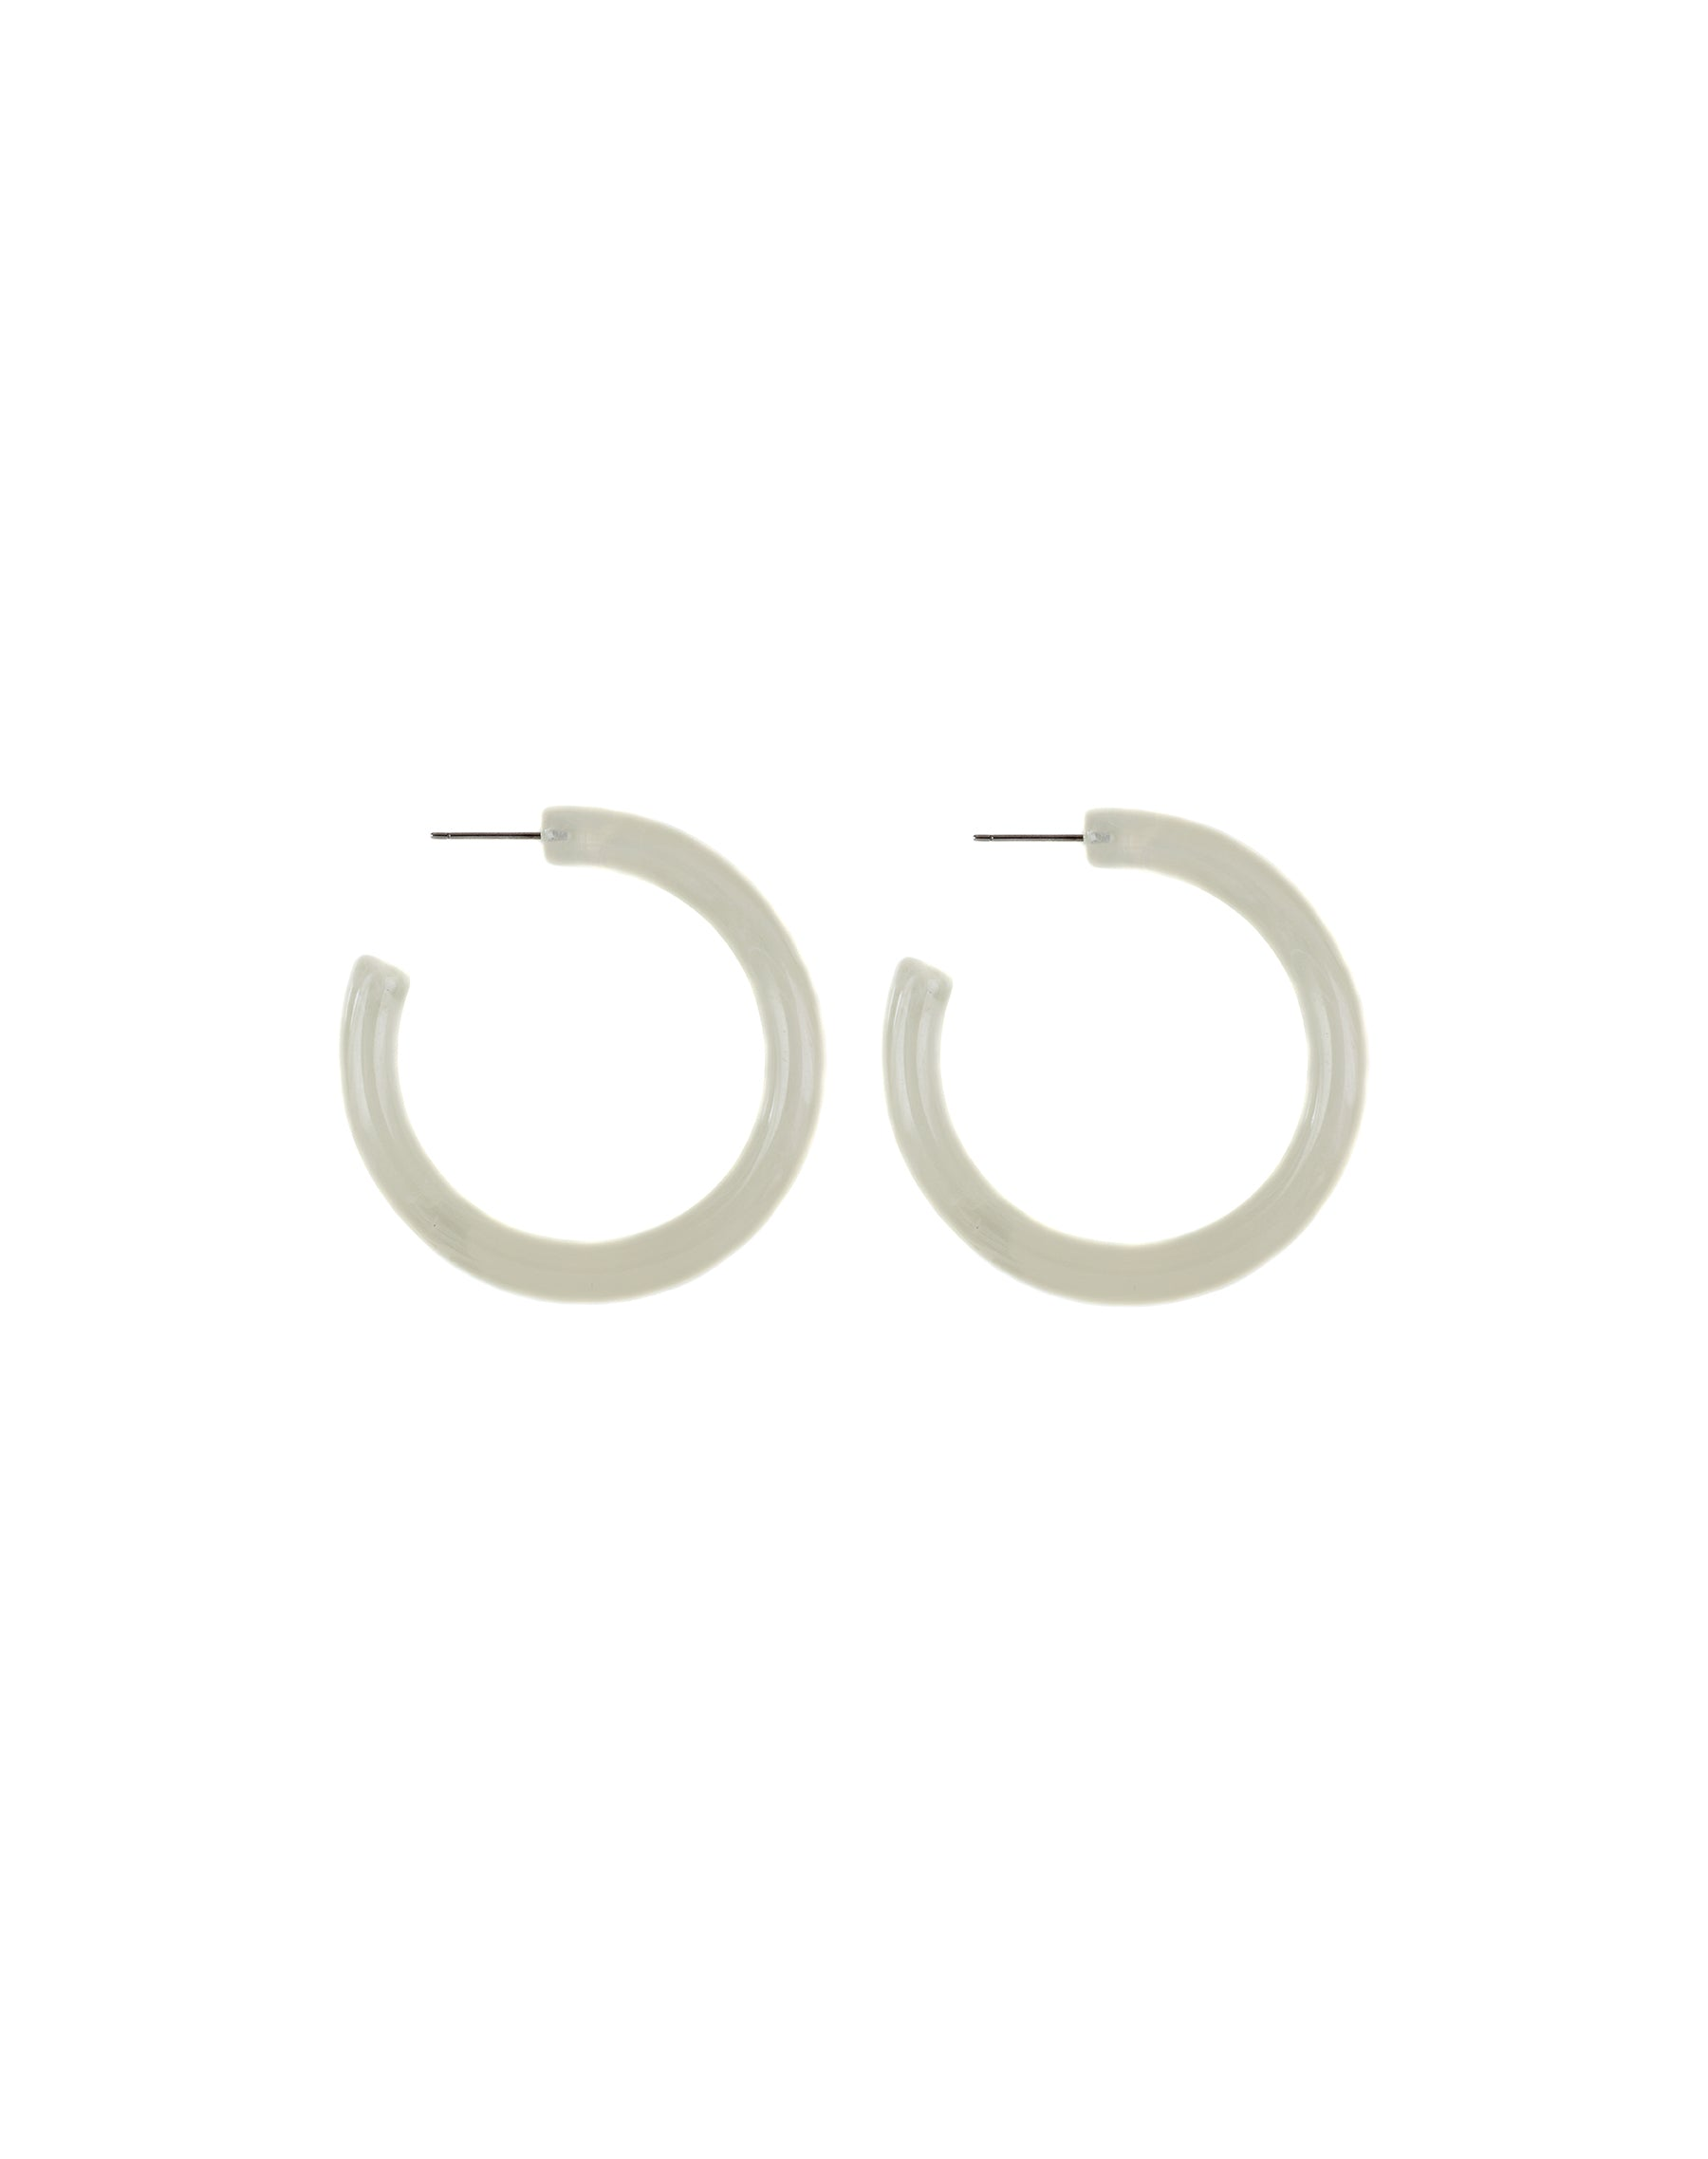 Photo of the Jeanne hoops in lucite by Lisbeth.